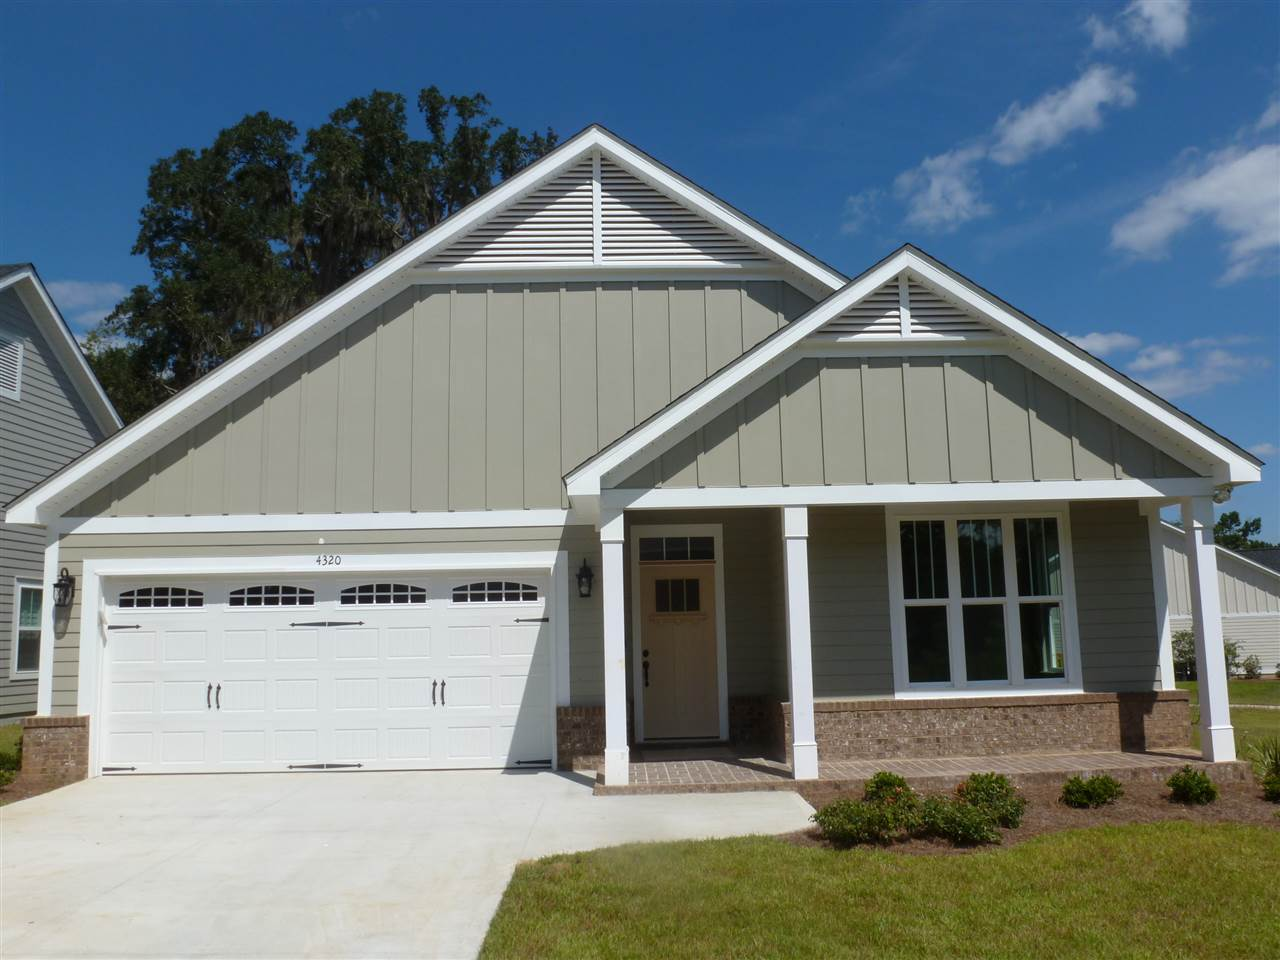 New construction homes for sale in the Preserve at Buck Lake in Tallahassee, FL